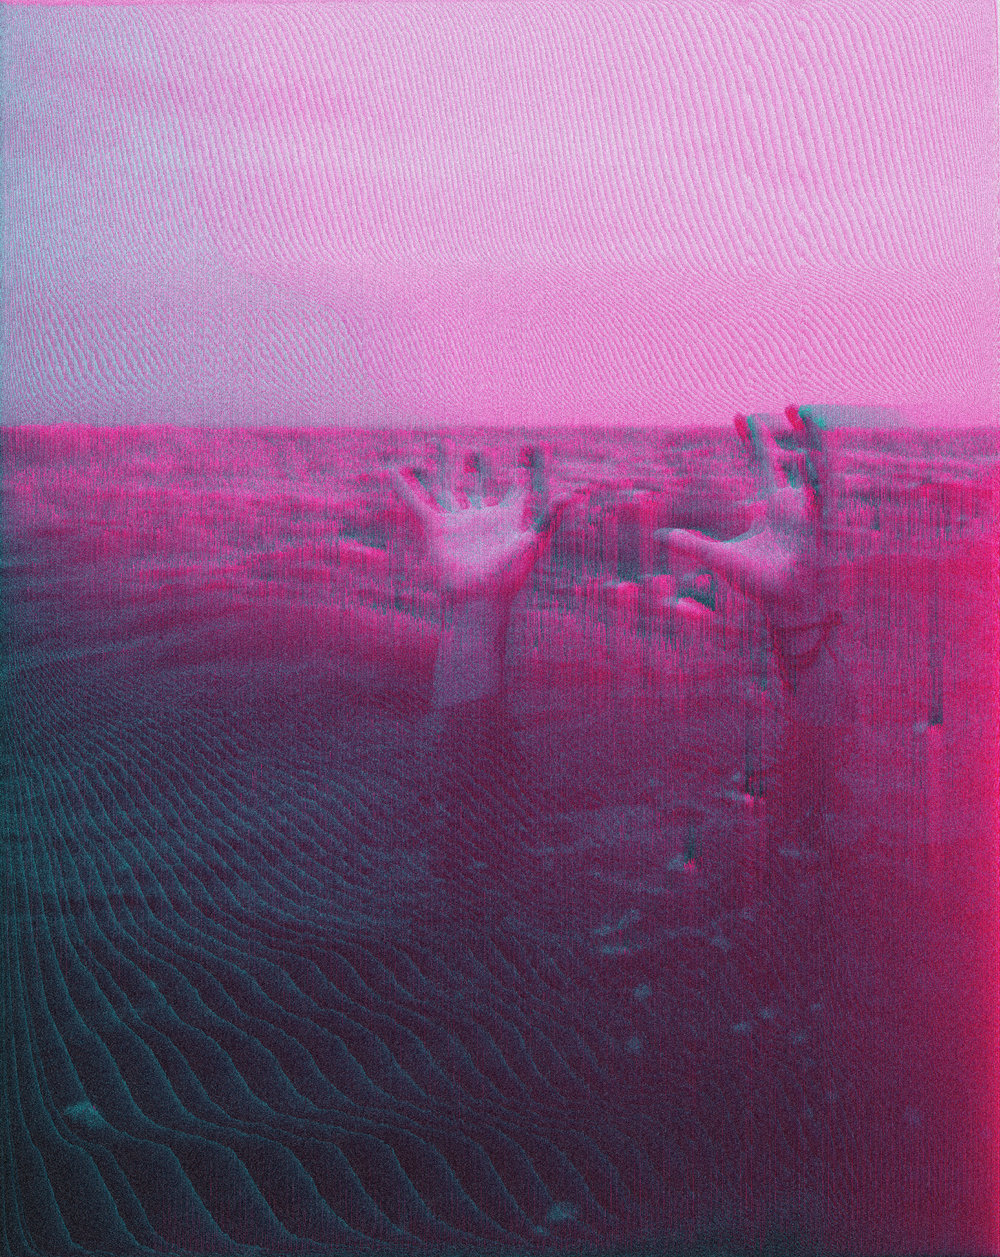 anaglych_2.1_17